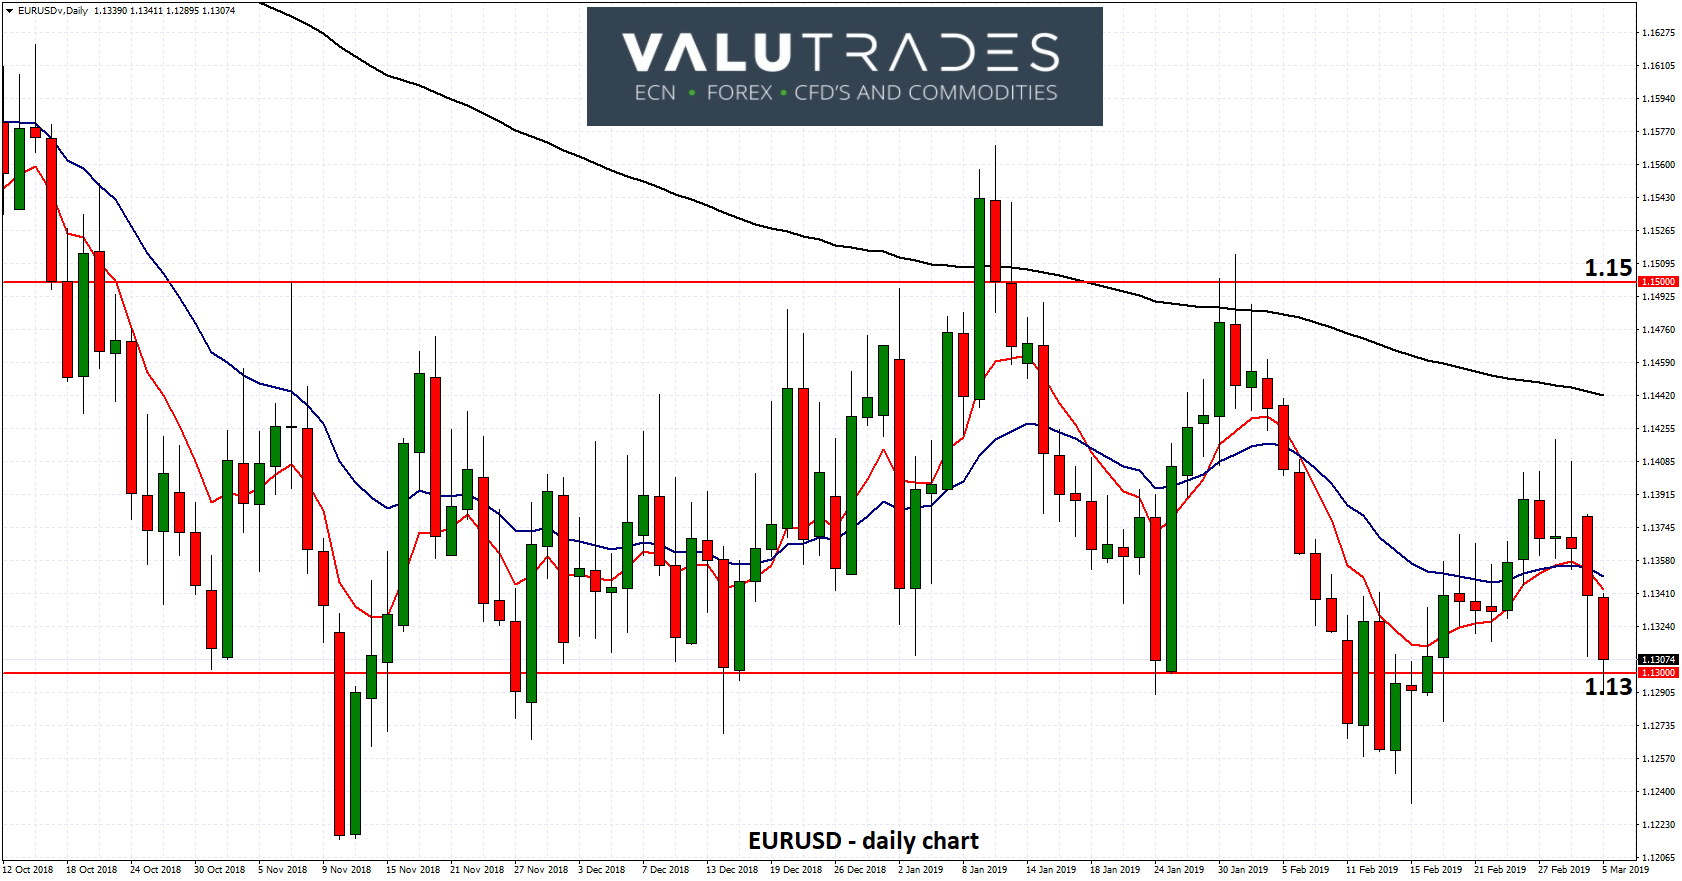 EURUSD - Remains Above Support at 1.13 ahead of ECB Meeting